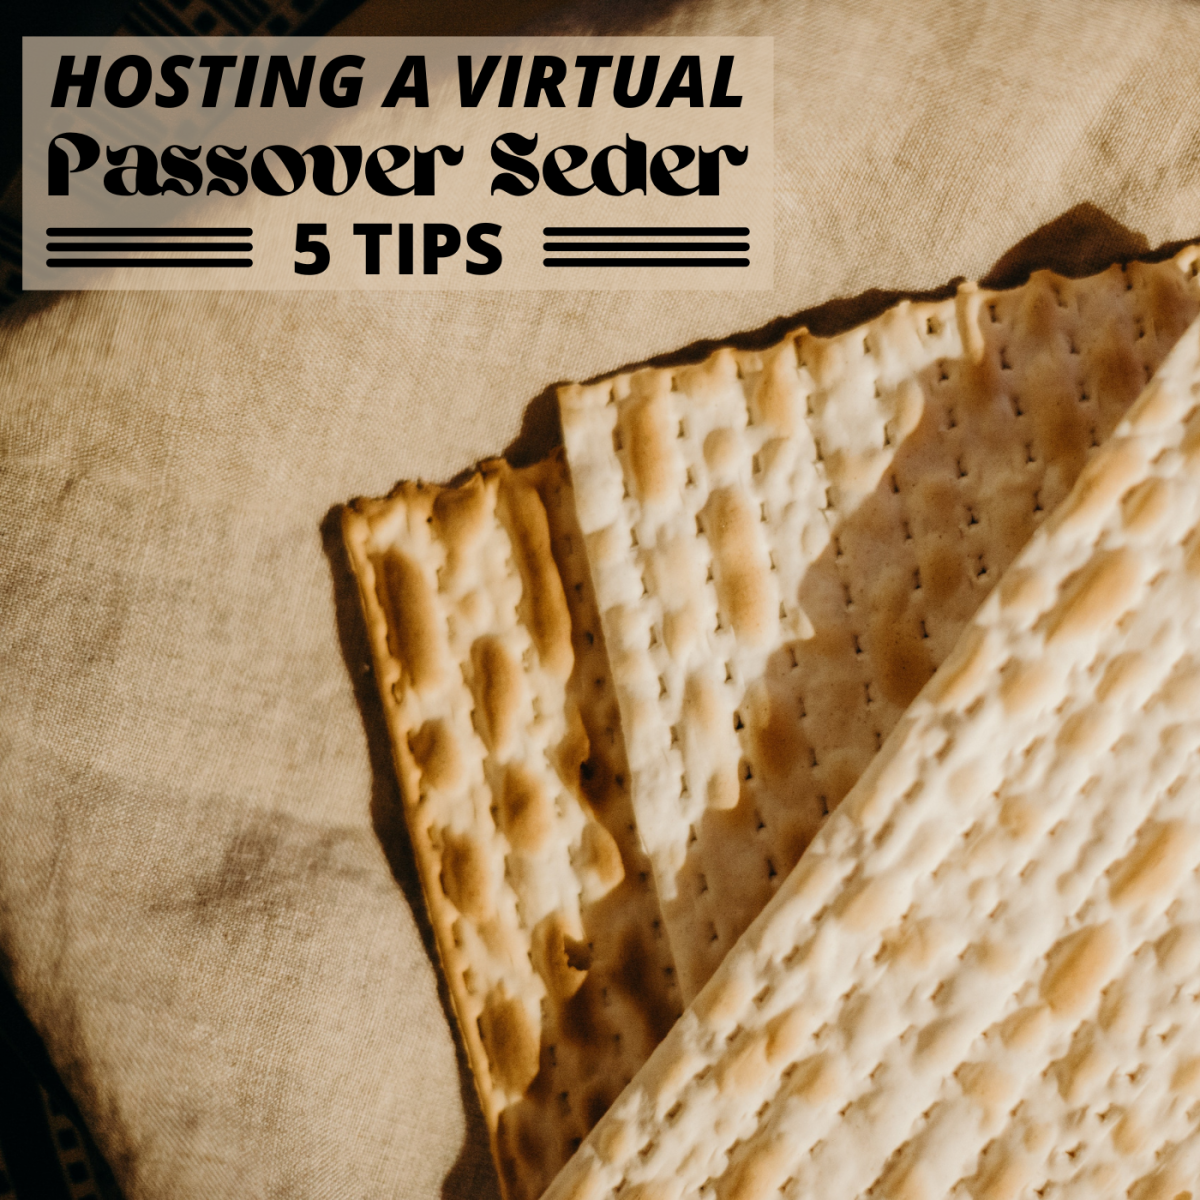 Celebrate Passover with a virtual service and the unique foods that help make the holiday special.